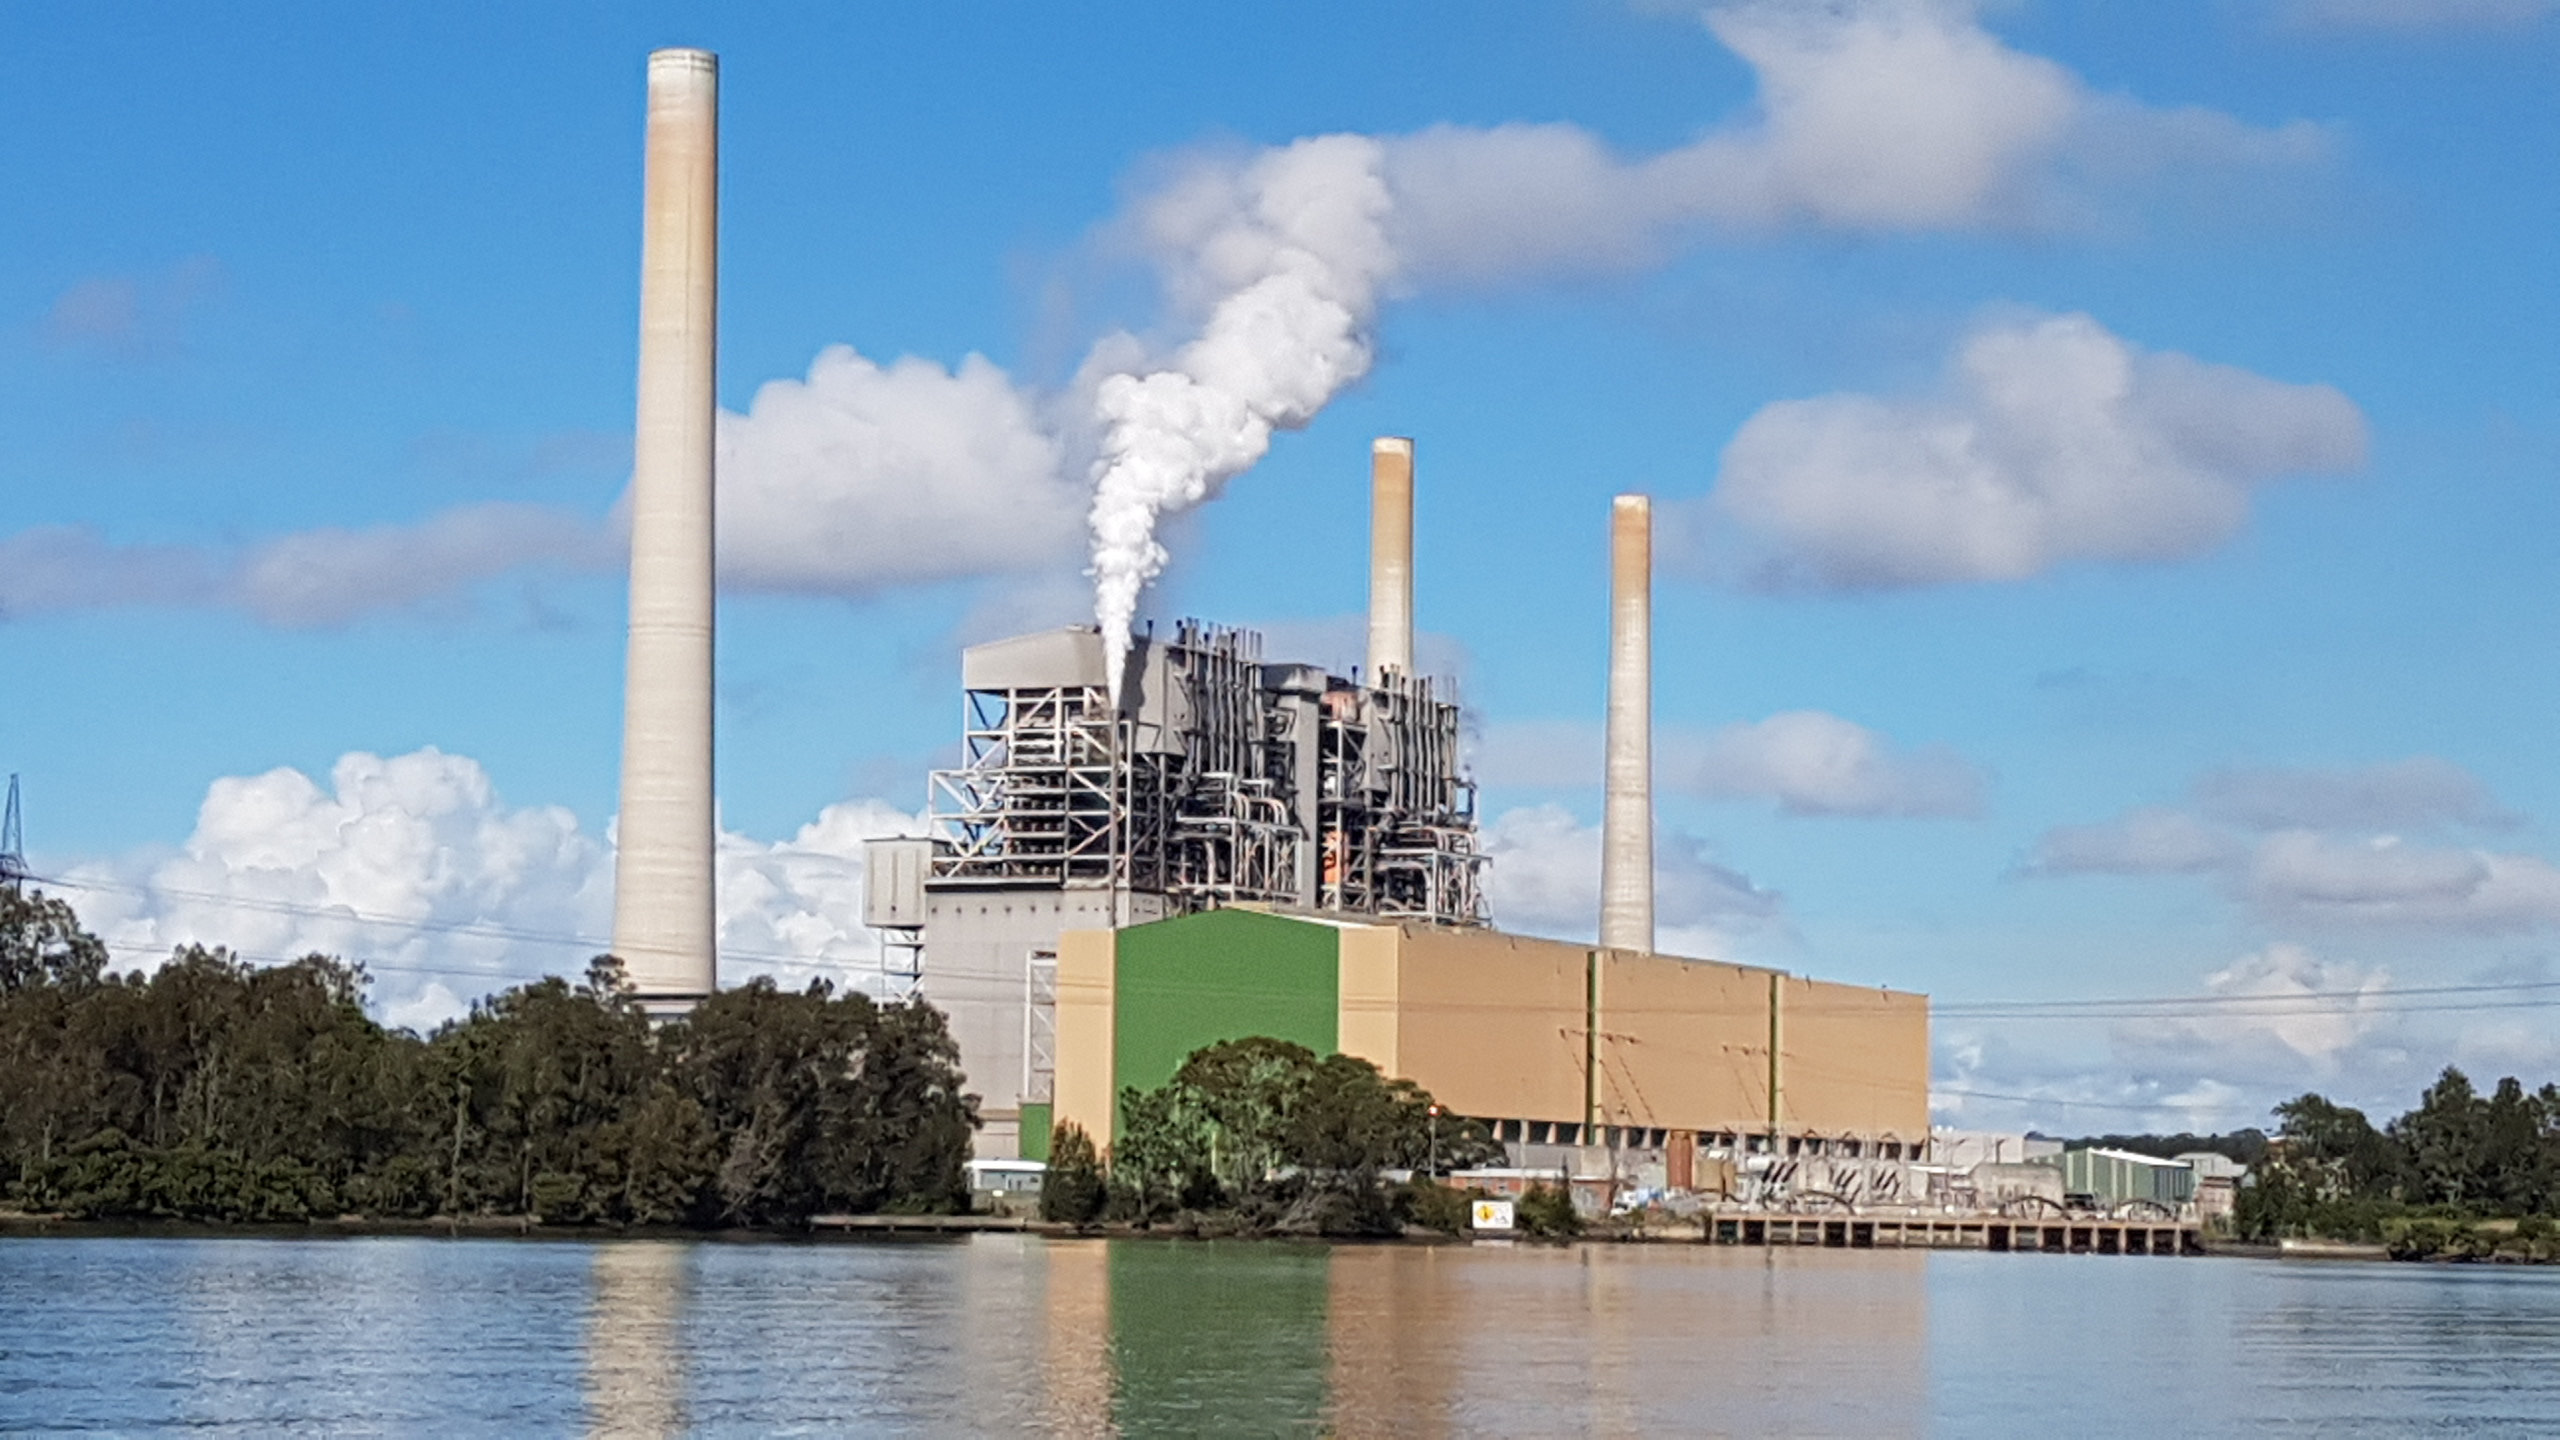 vales Point power station pic